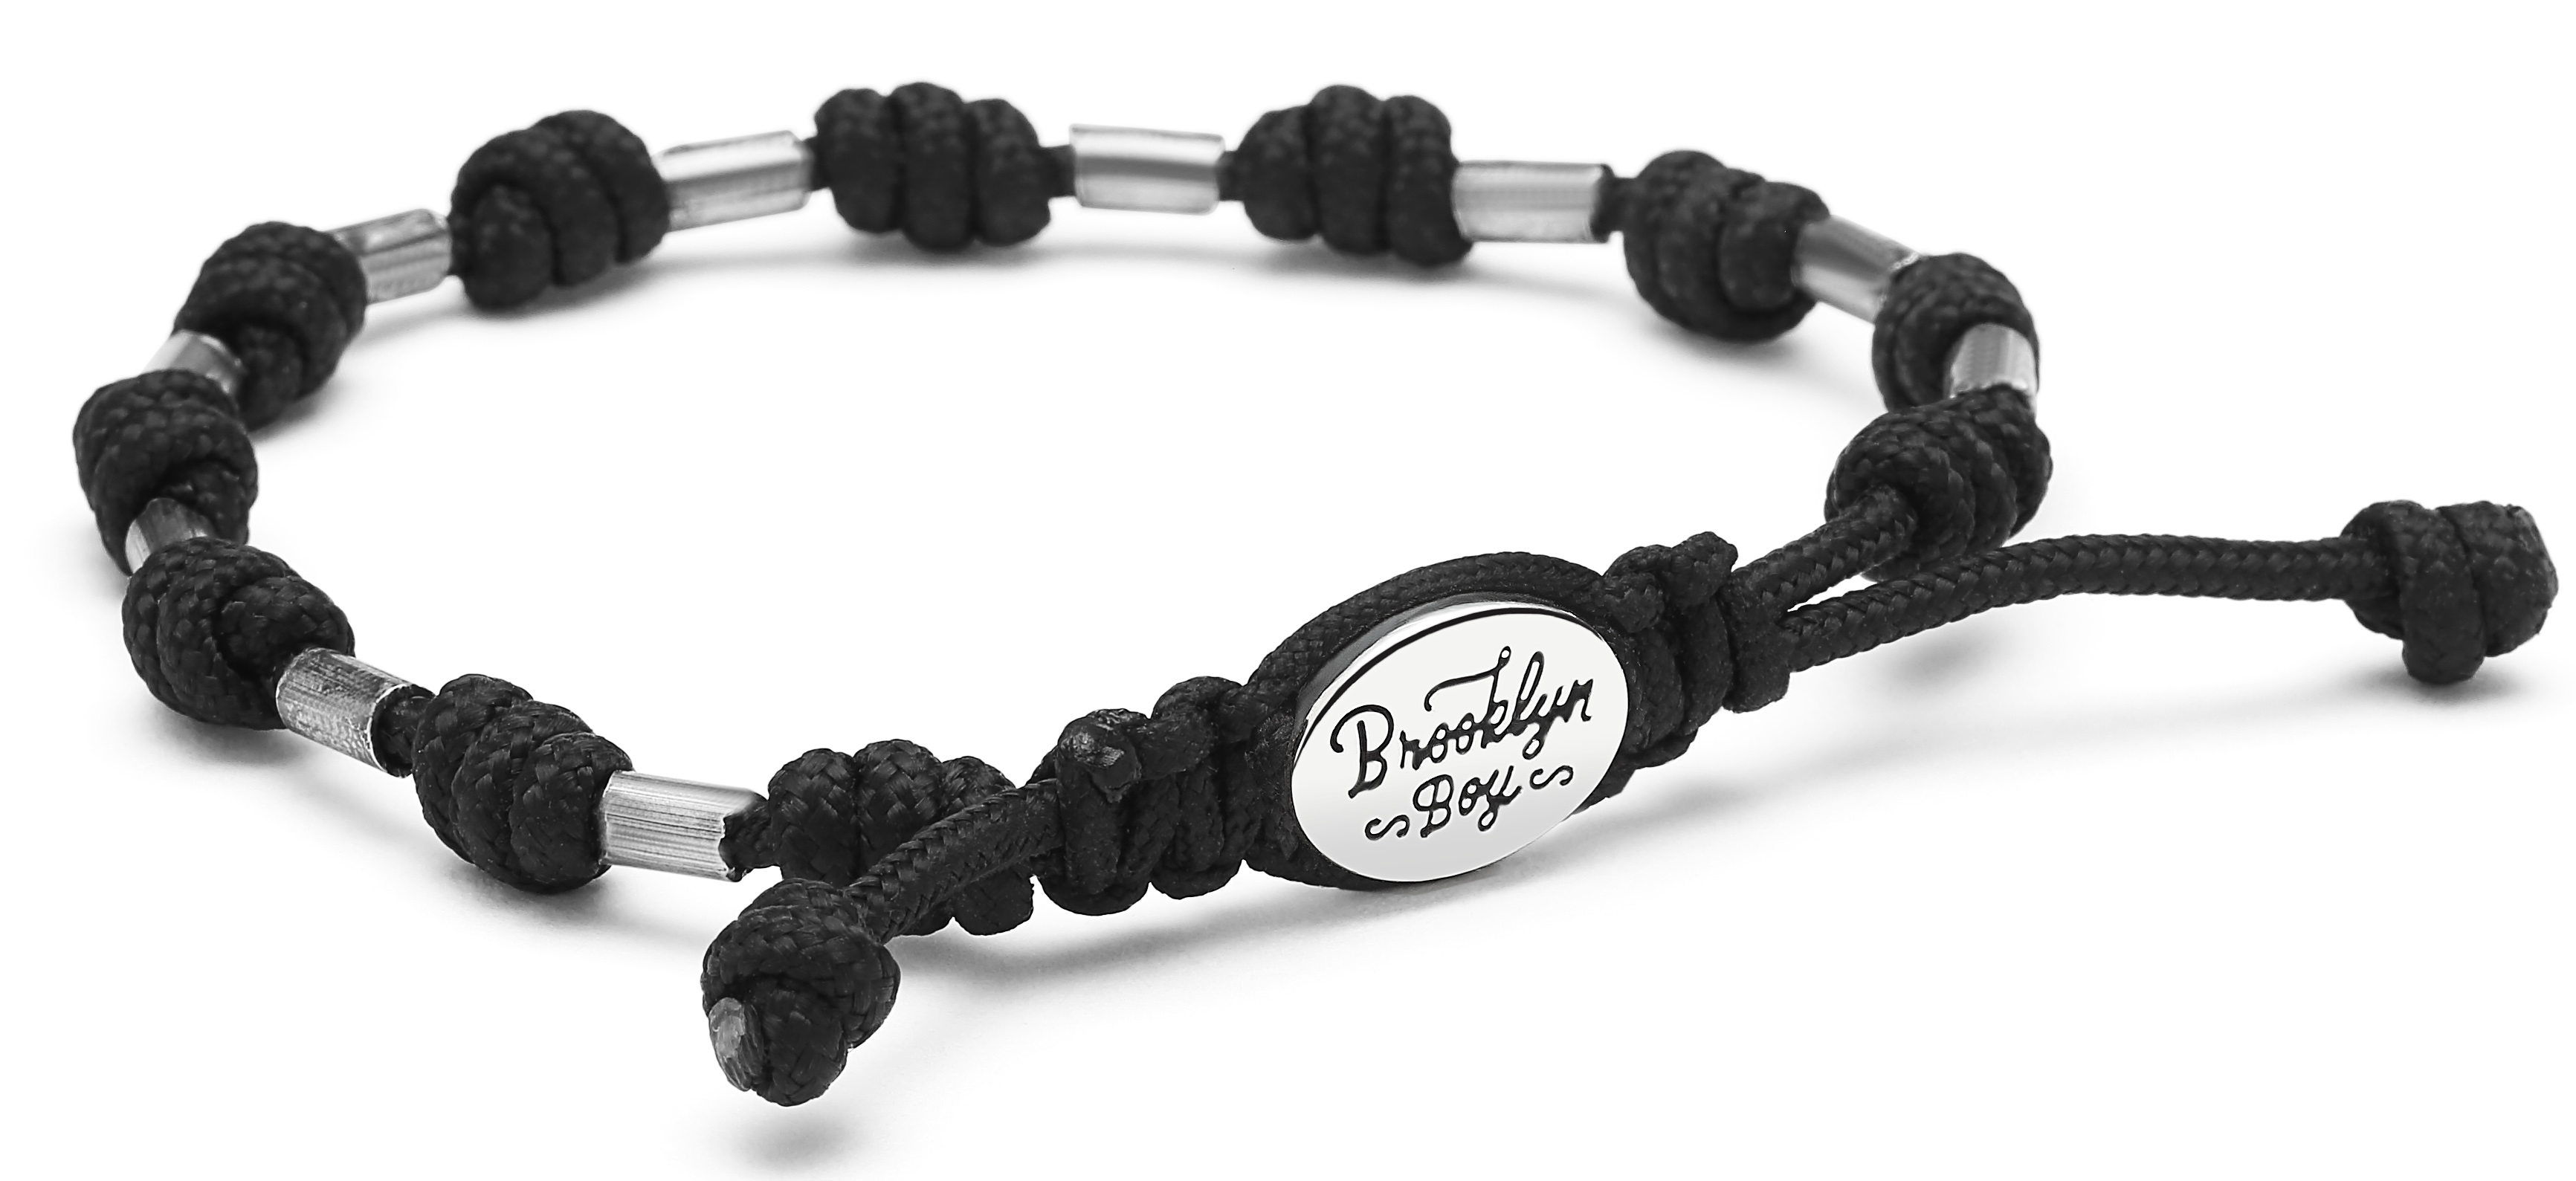 Men's Bracelet w/ Sterling Tube Beads and Knotted Cord